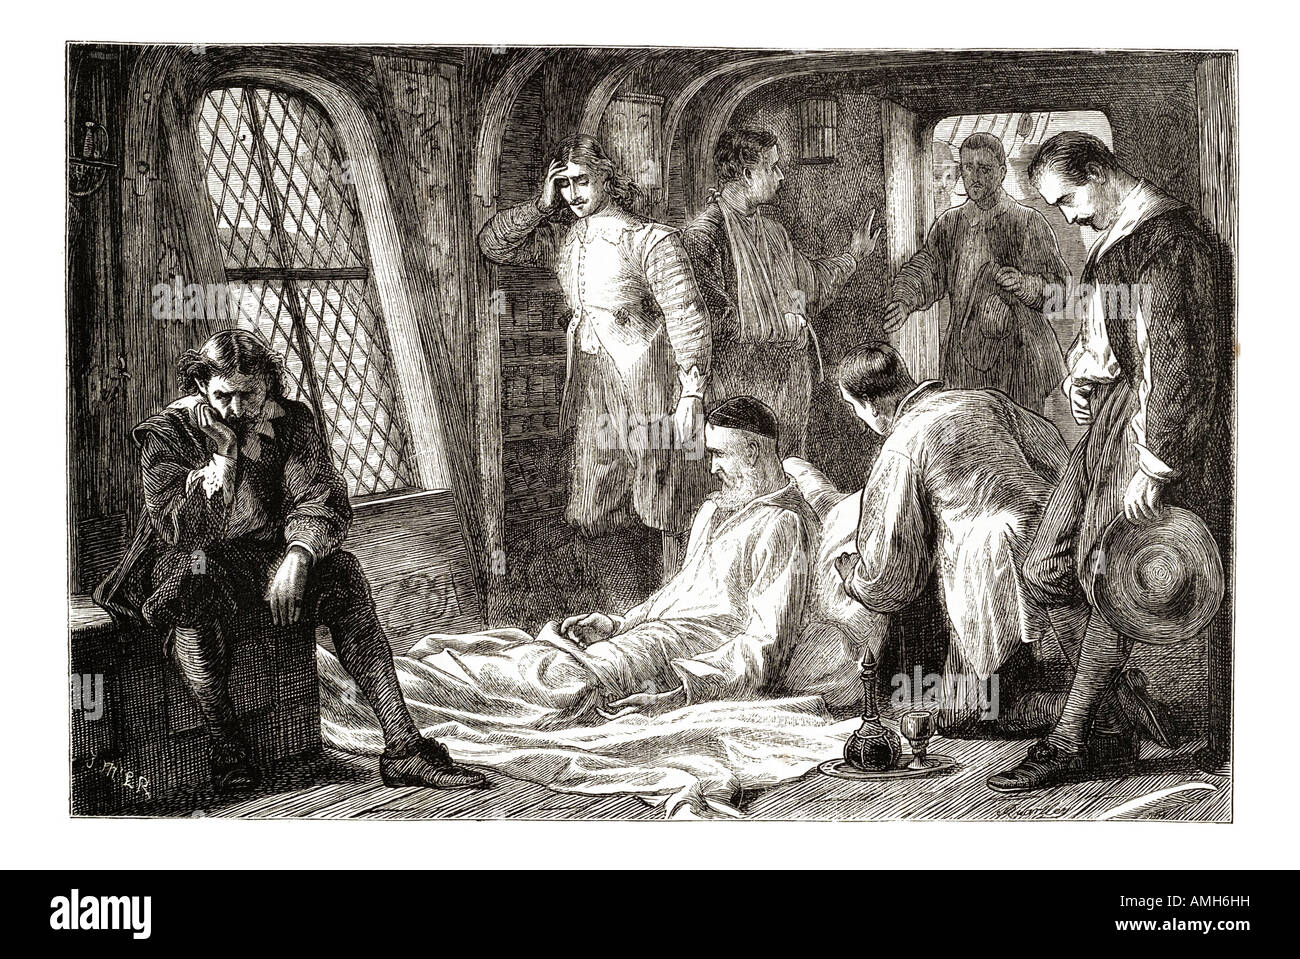 death Robert Blake 1599 1657 military commander Commonwealth  England english famous admiral Member Parliament Siege - Stock Image